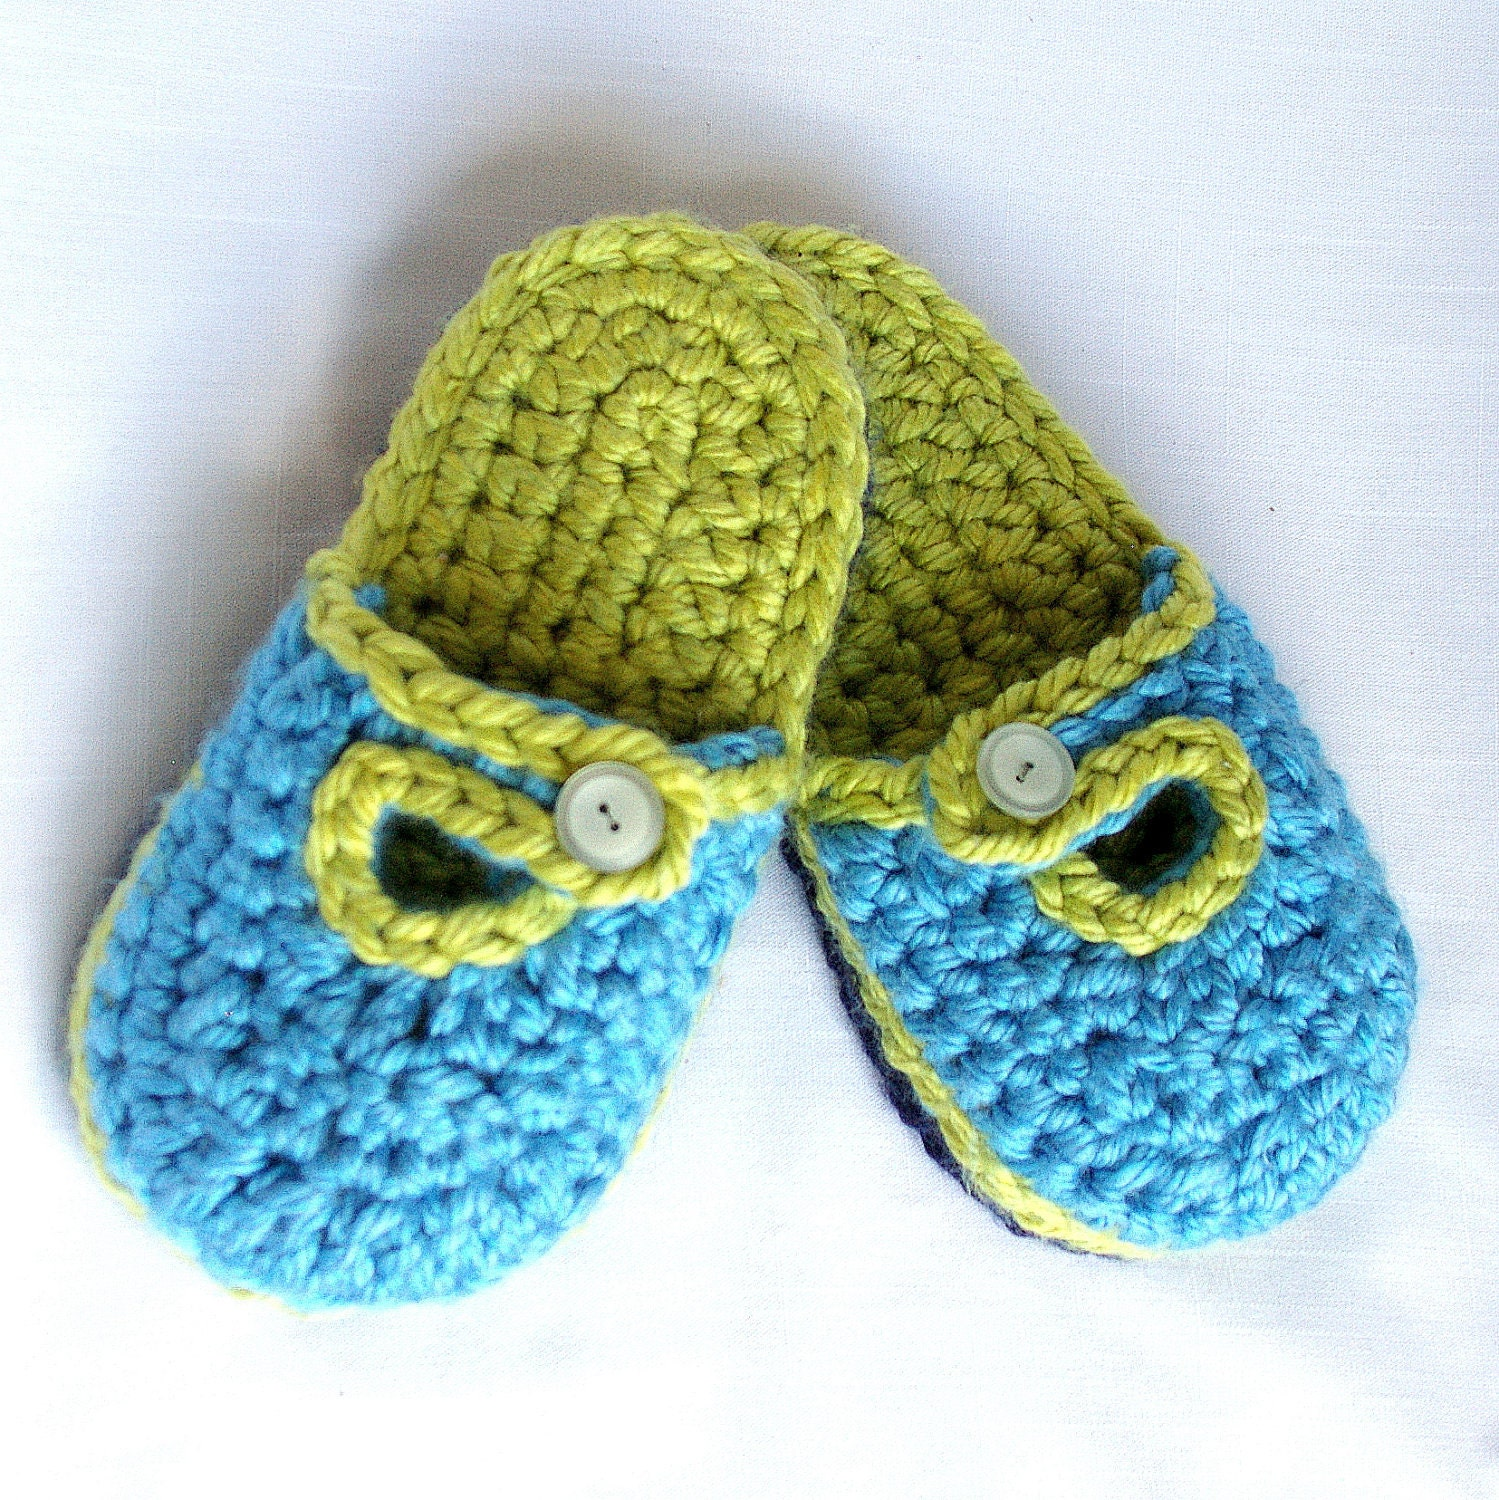 Crochet Version of Easy House Slippers Pattern @Craftzine.com blog